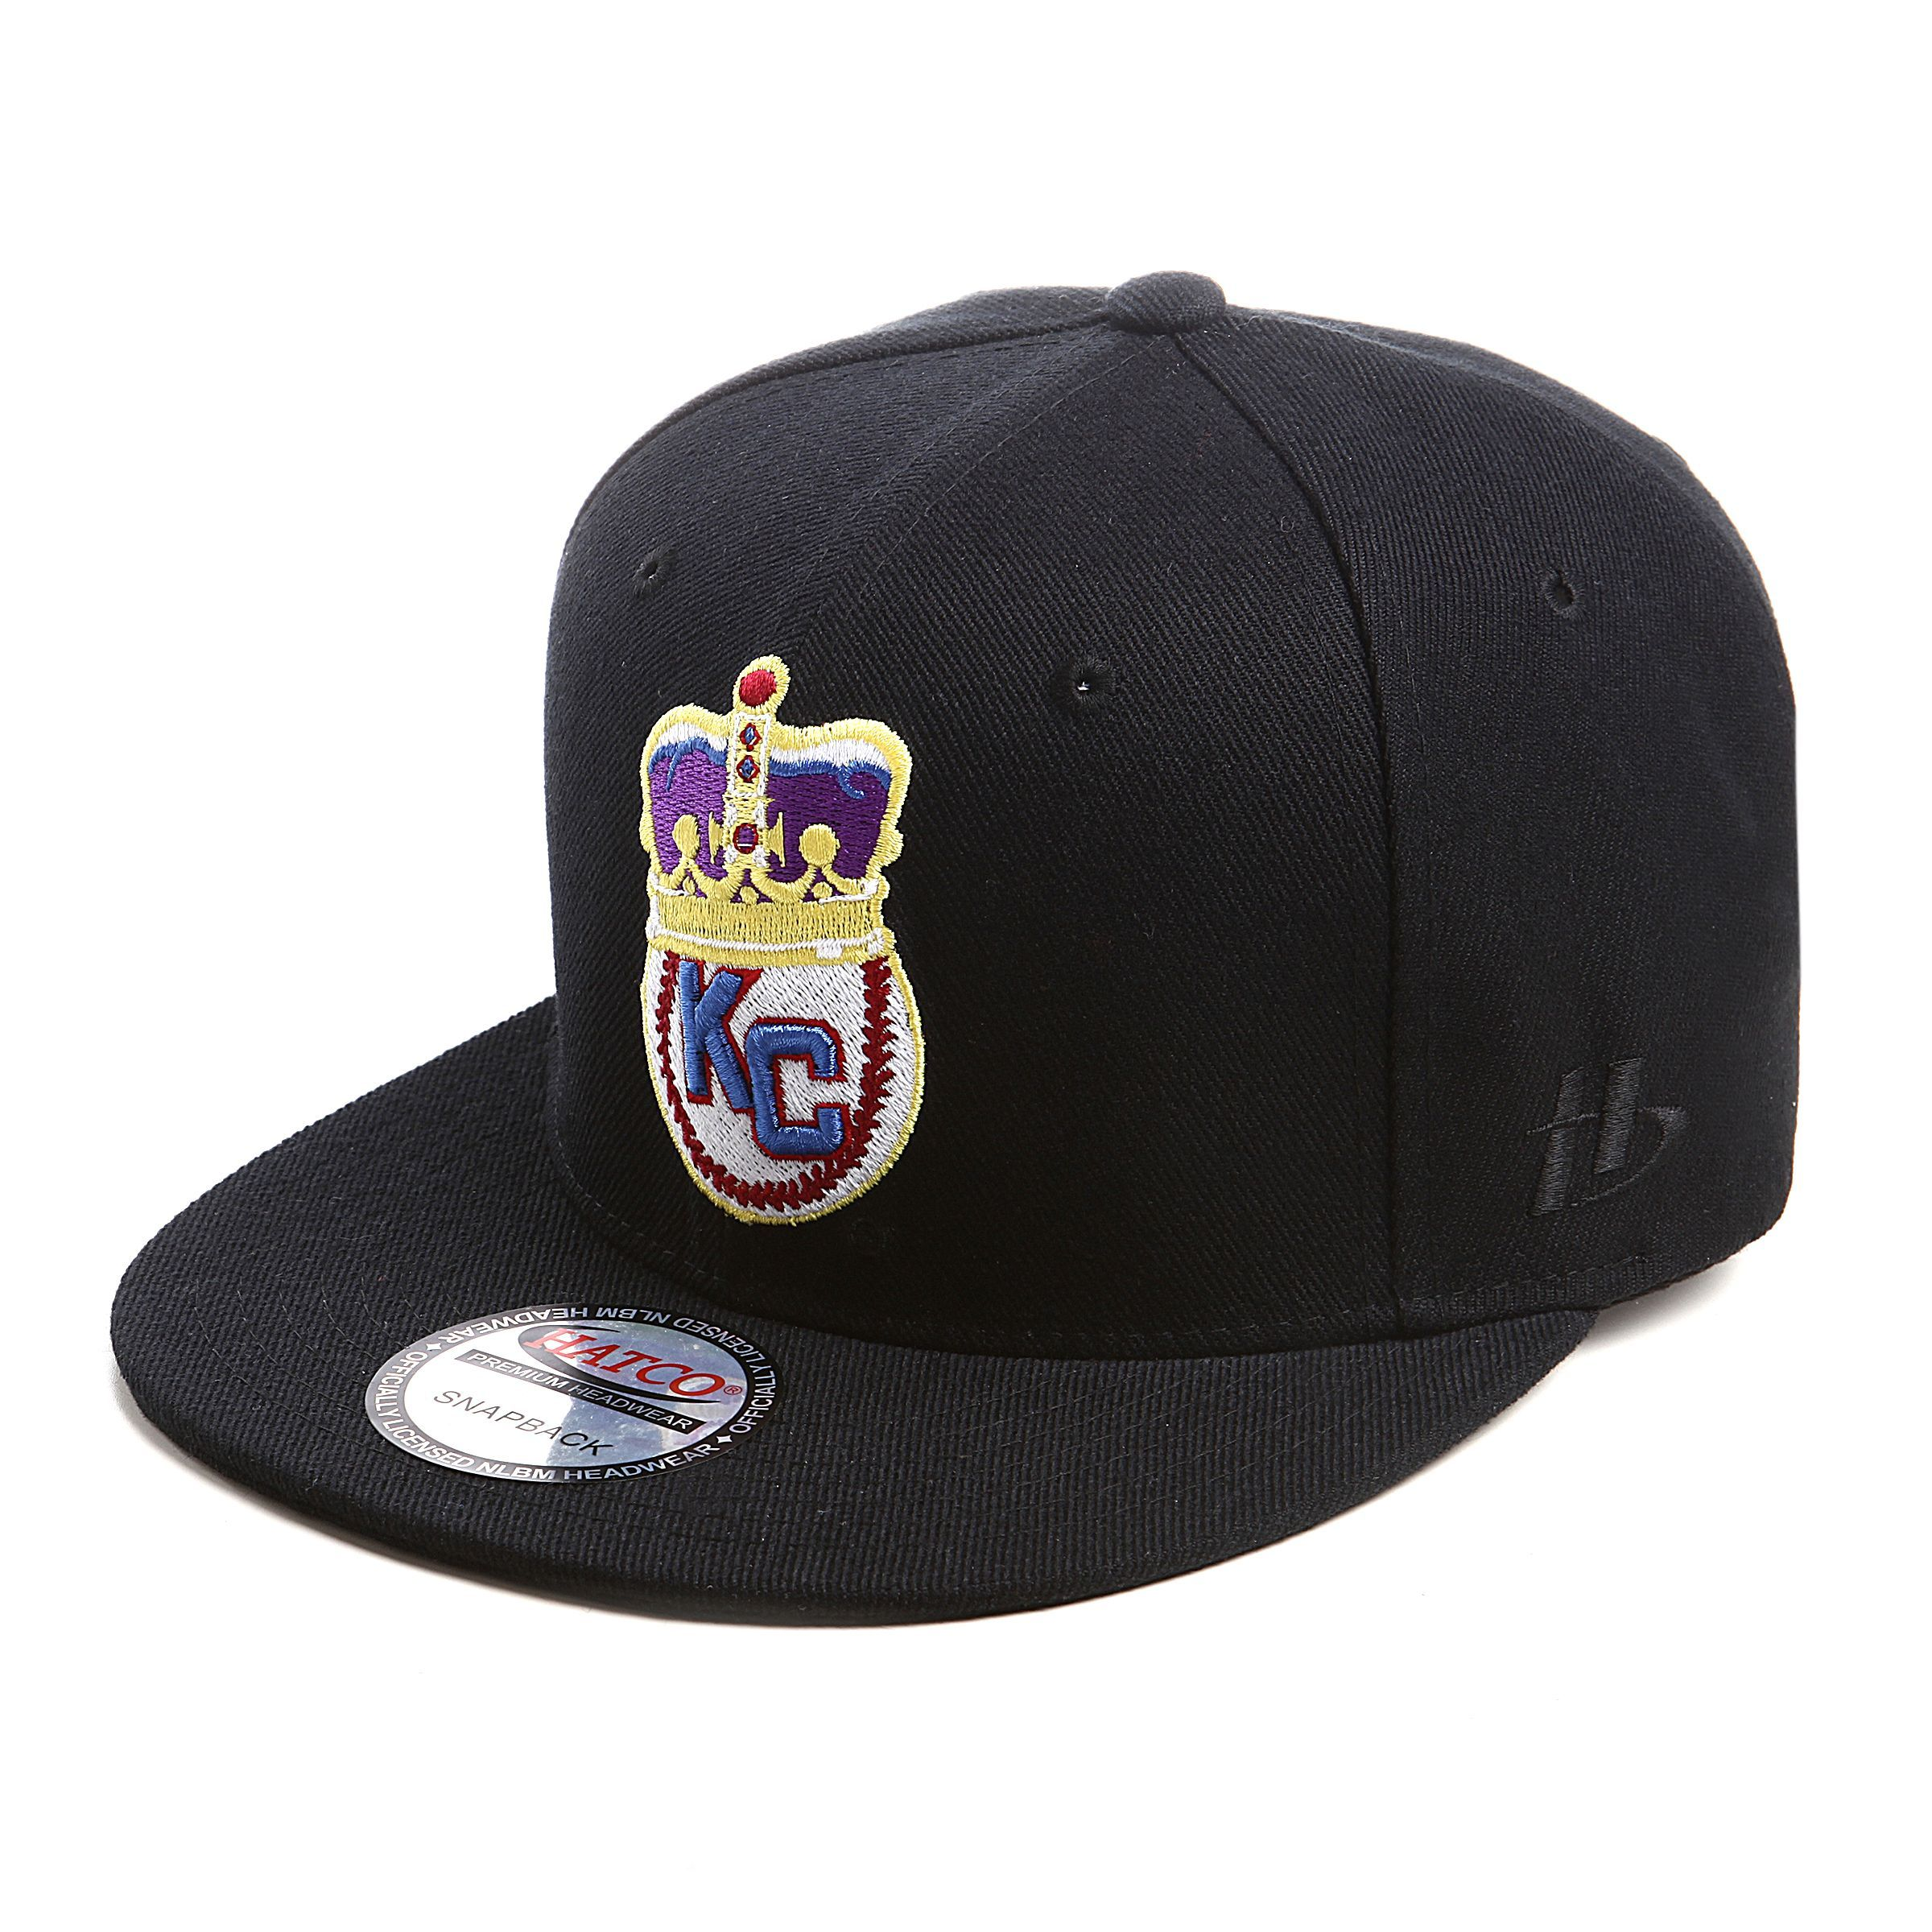 6f63dab751669 Tampa Bay Devil Rays All Black 10 Seasons Patch New Era 59Fifty Fitted Hat  Cap